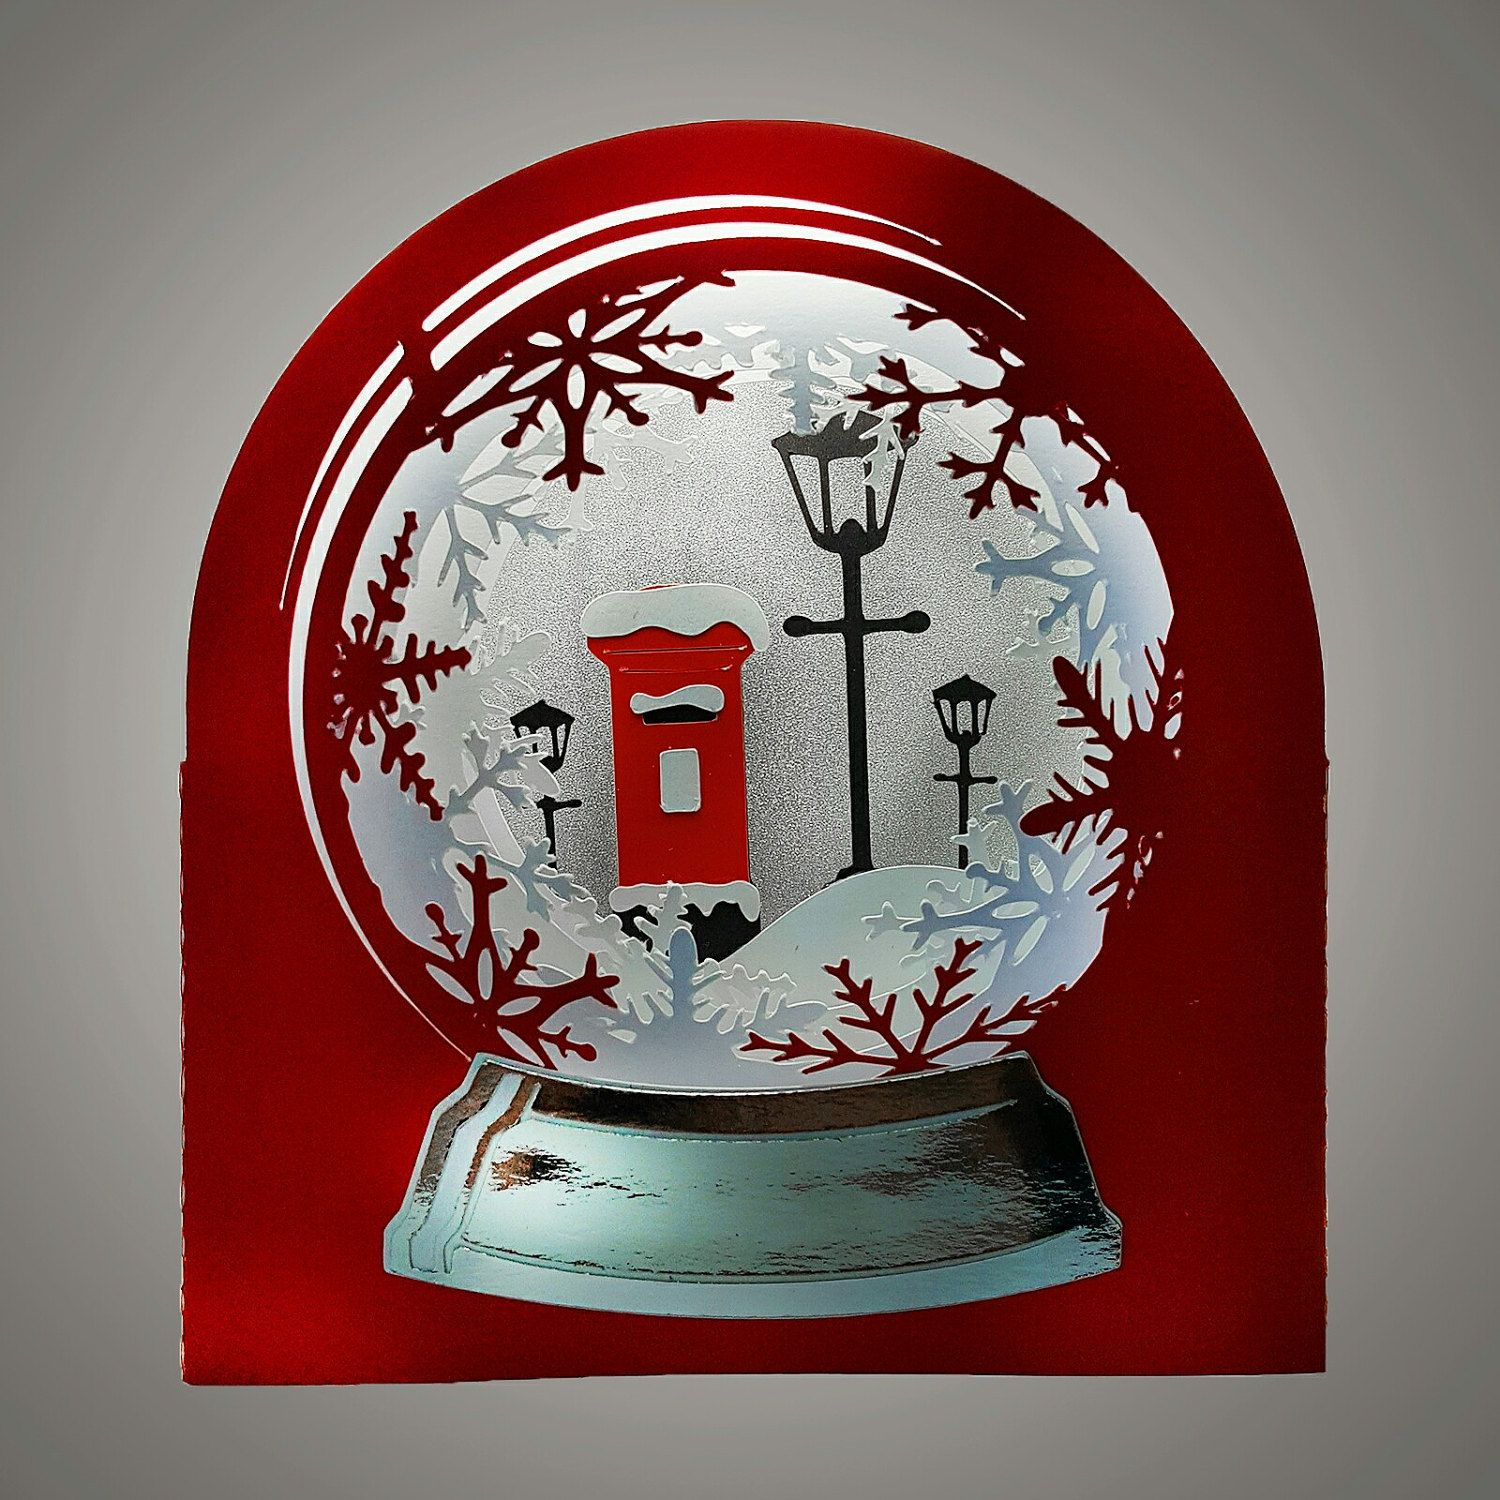 Snow globe card red letter box template letter boxes style box snow globe card red letter box template spiritdancerdesigns Gallery